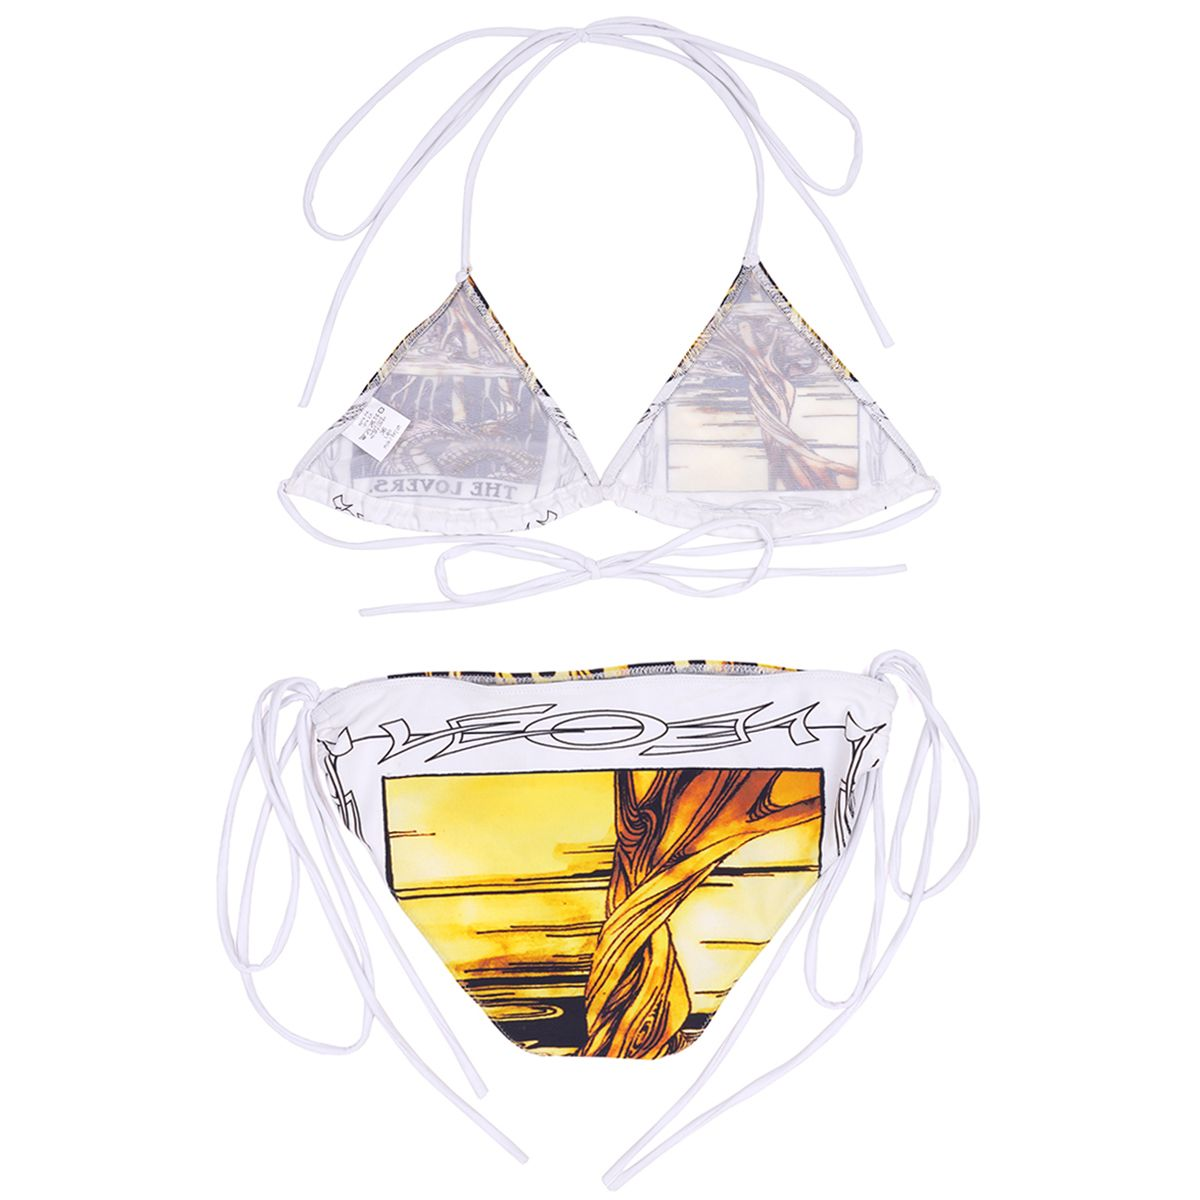 LĒO MAG MELL/BIKINI W.TAROT PRINT / THE LOVERS